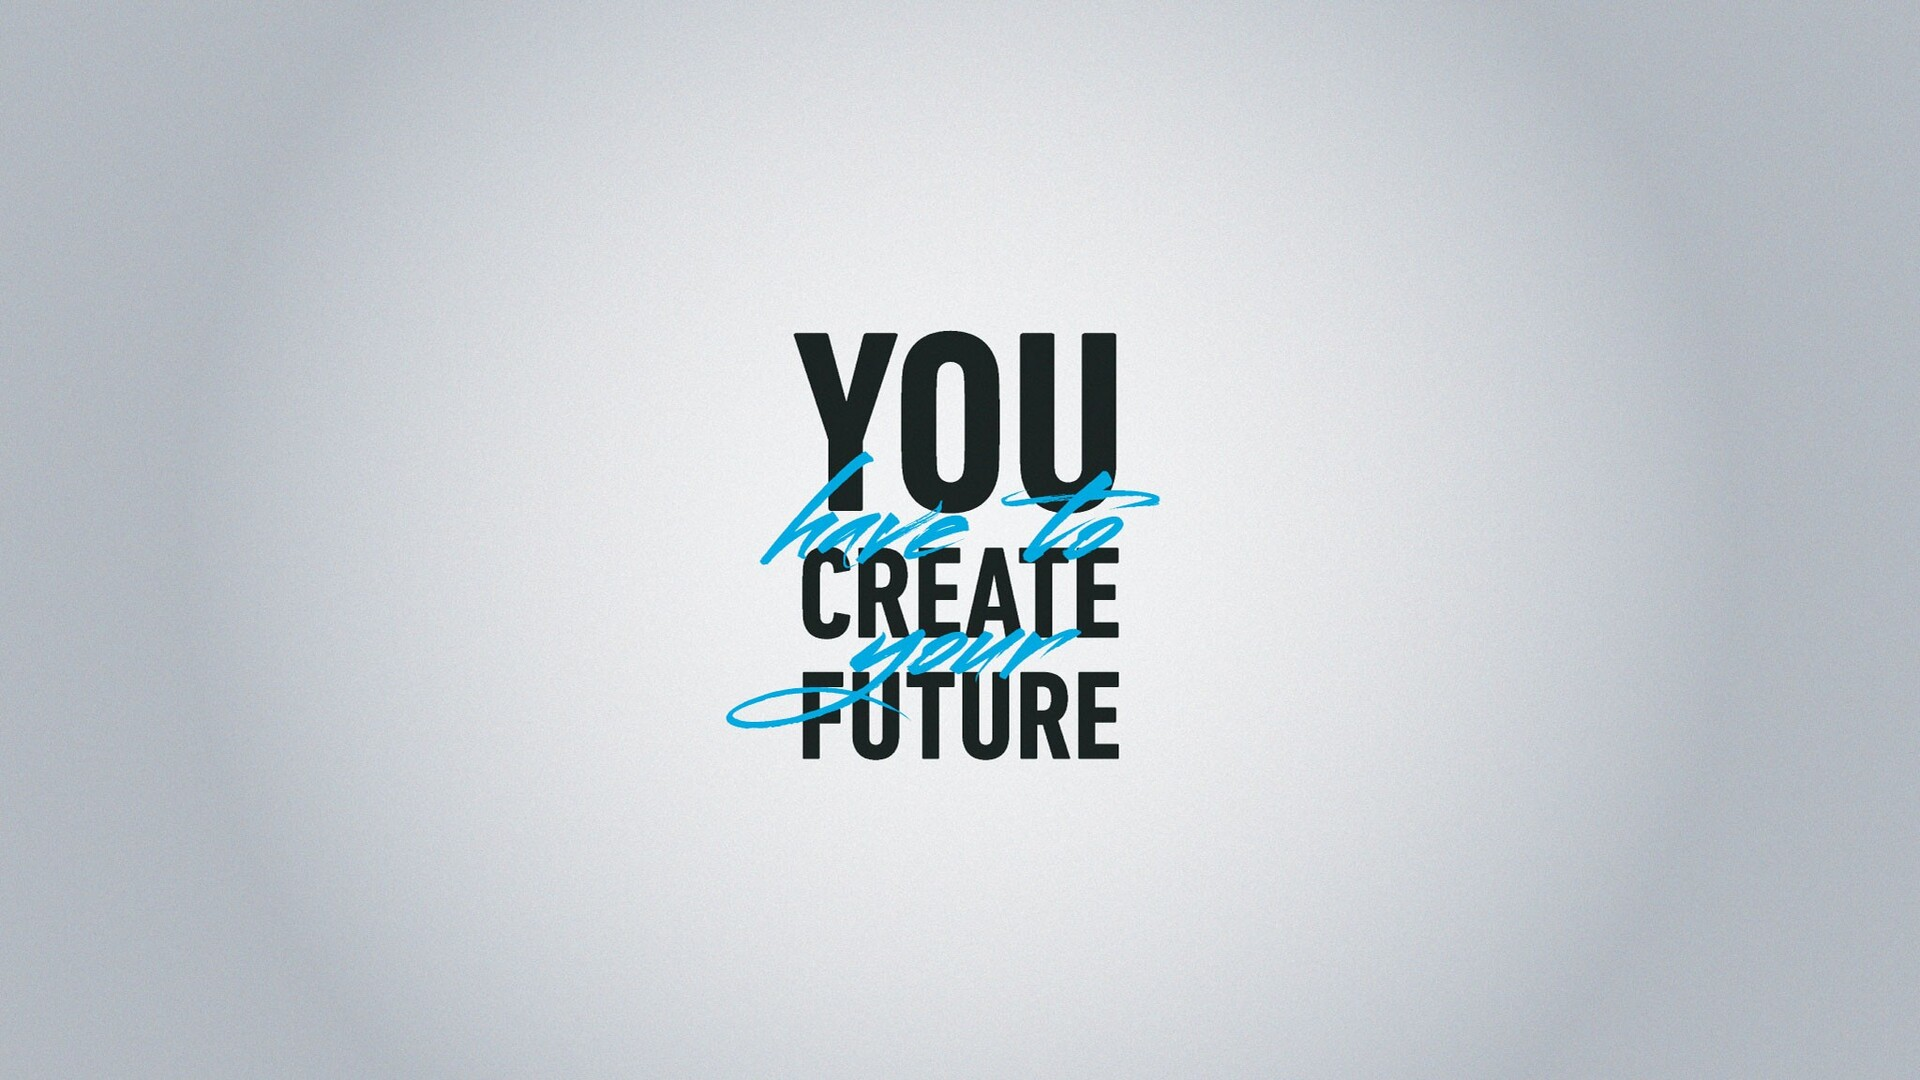 1920x1080 future inspiration laptop full hd 1080p hd 4k - Hd wallpapers for laptop with quotes ...